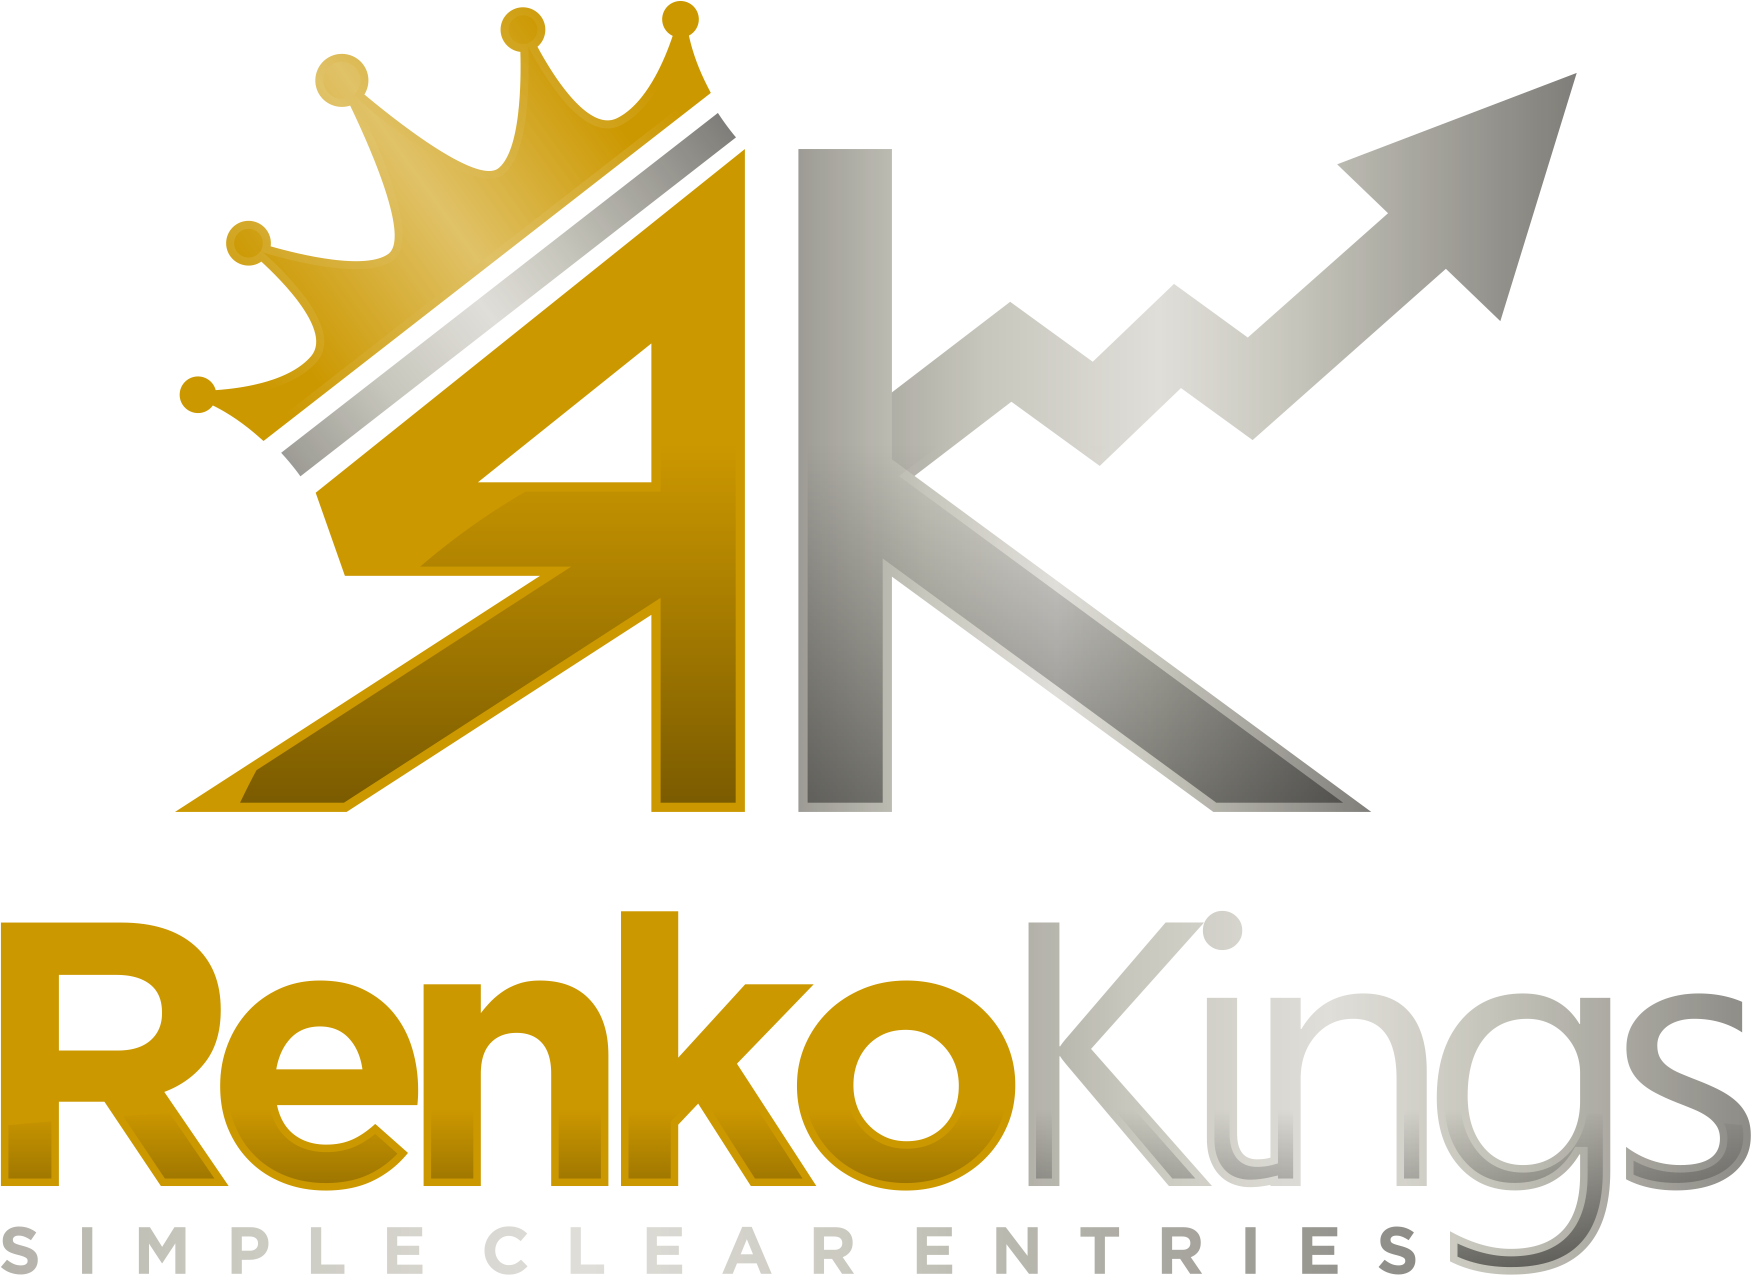 Renko kings – User-friendly, Simple & Efficient Trading Tool